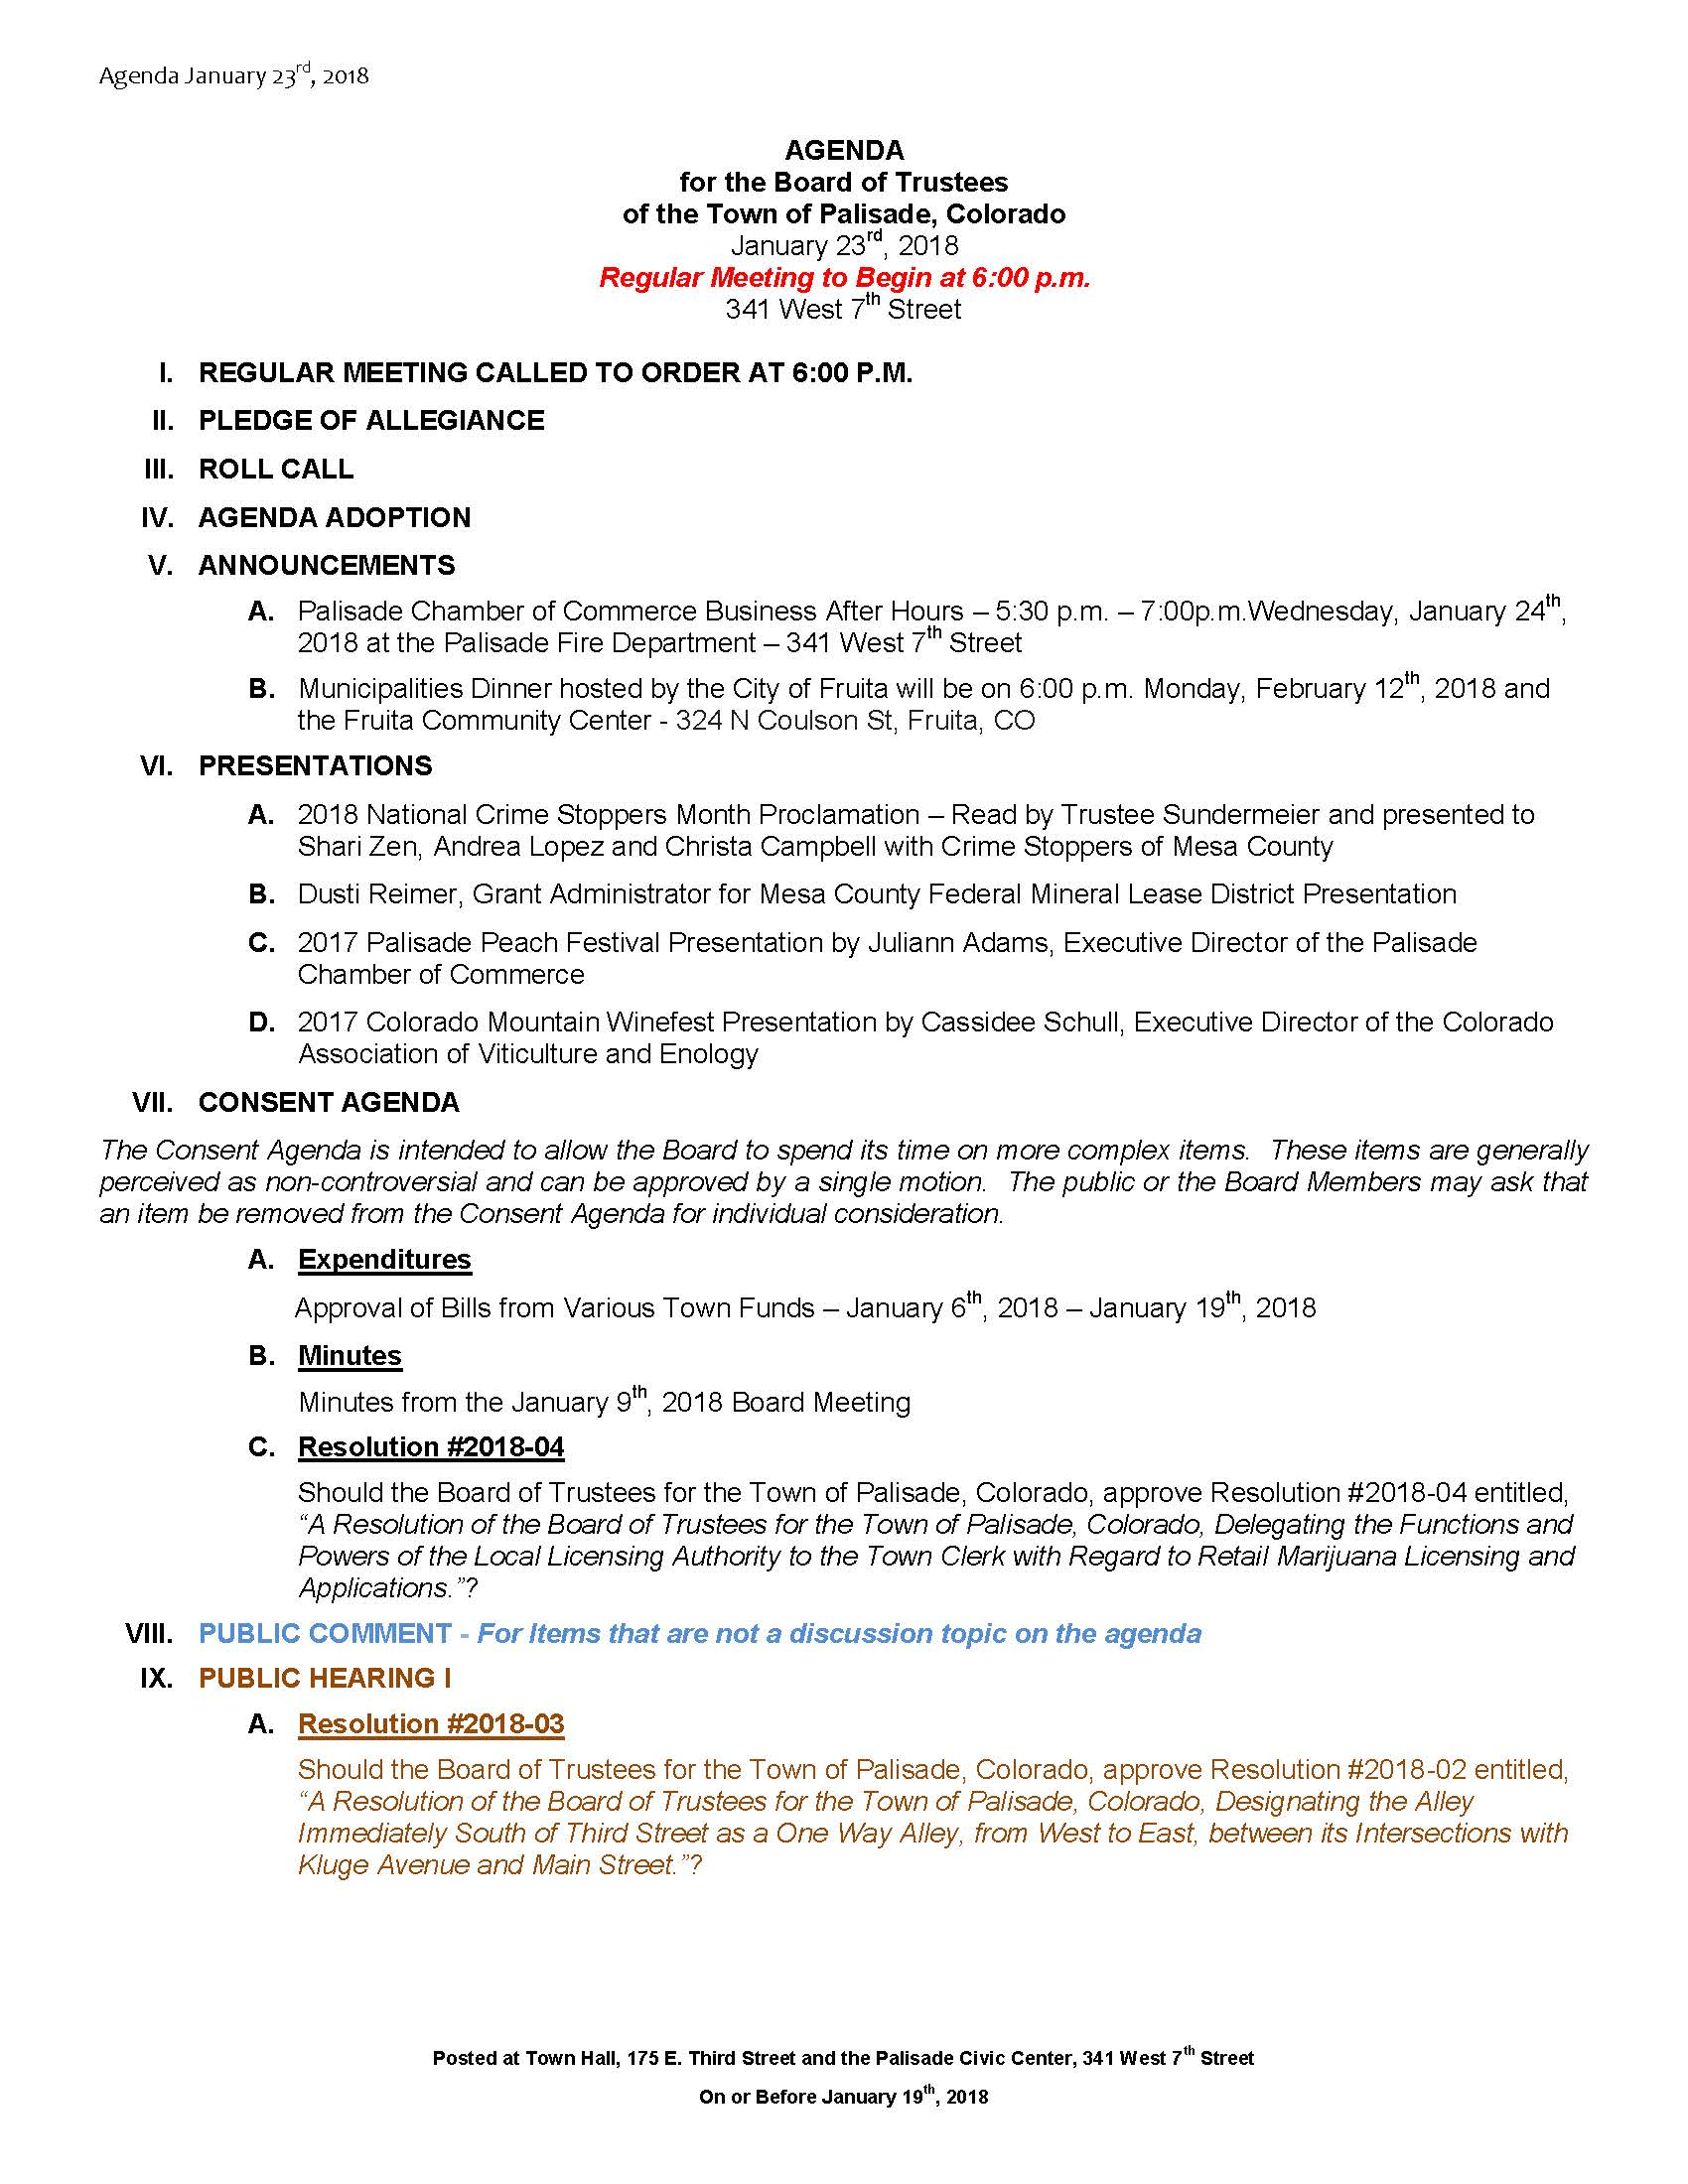 January 23rd 2018 Board Meeting Agenda Page 1